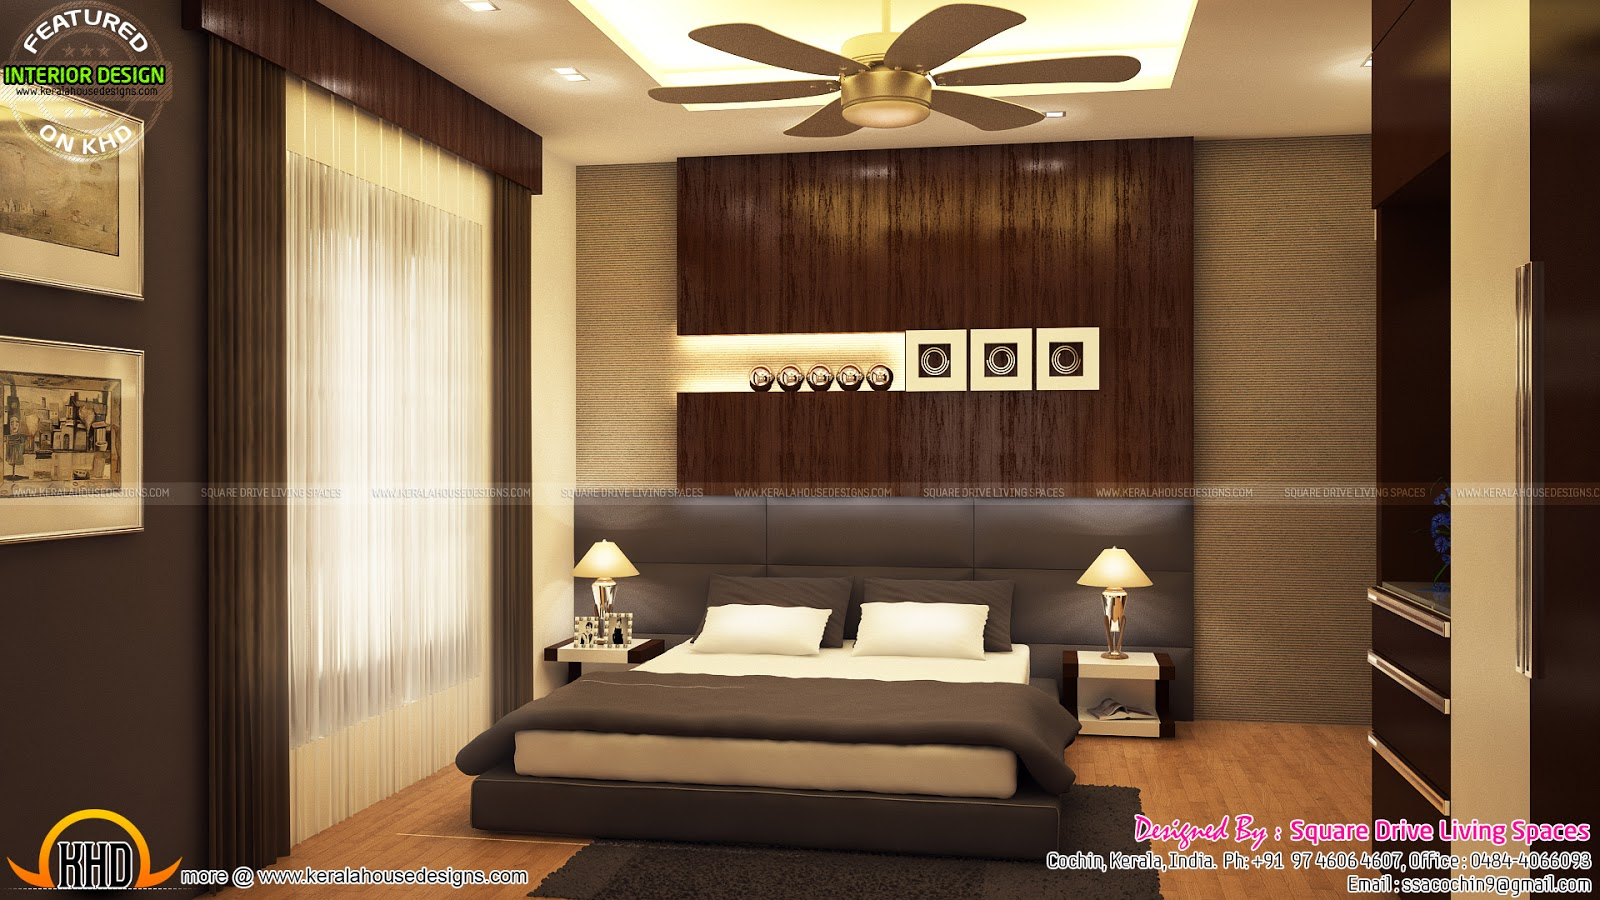 Interior designs of master bedroom living kitchen and for Master bedroom interior design images